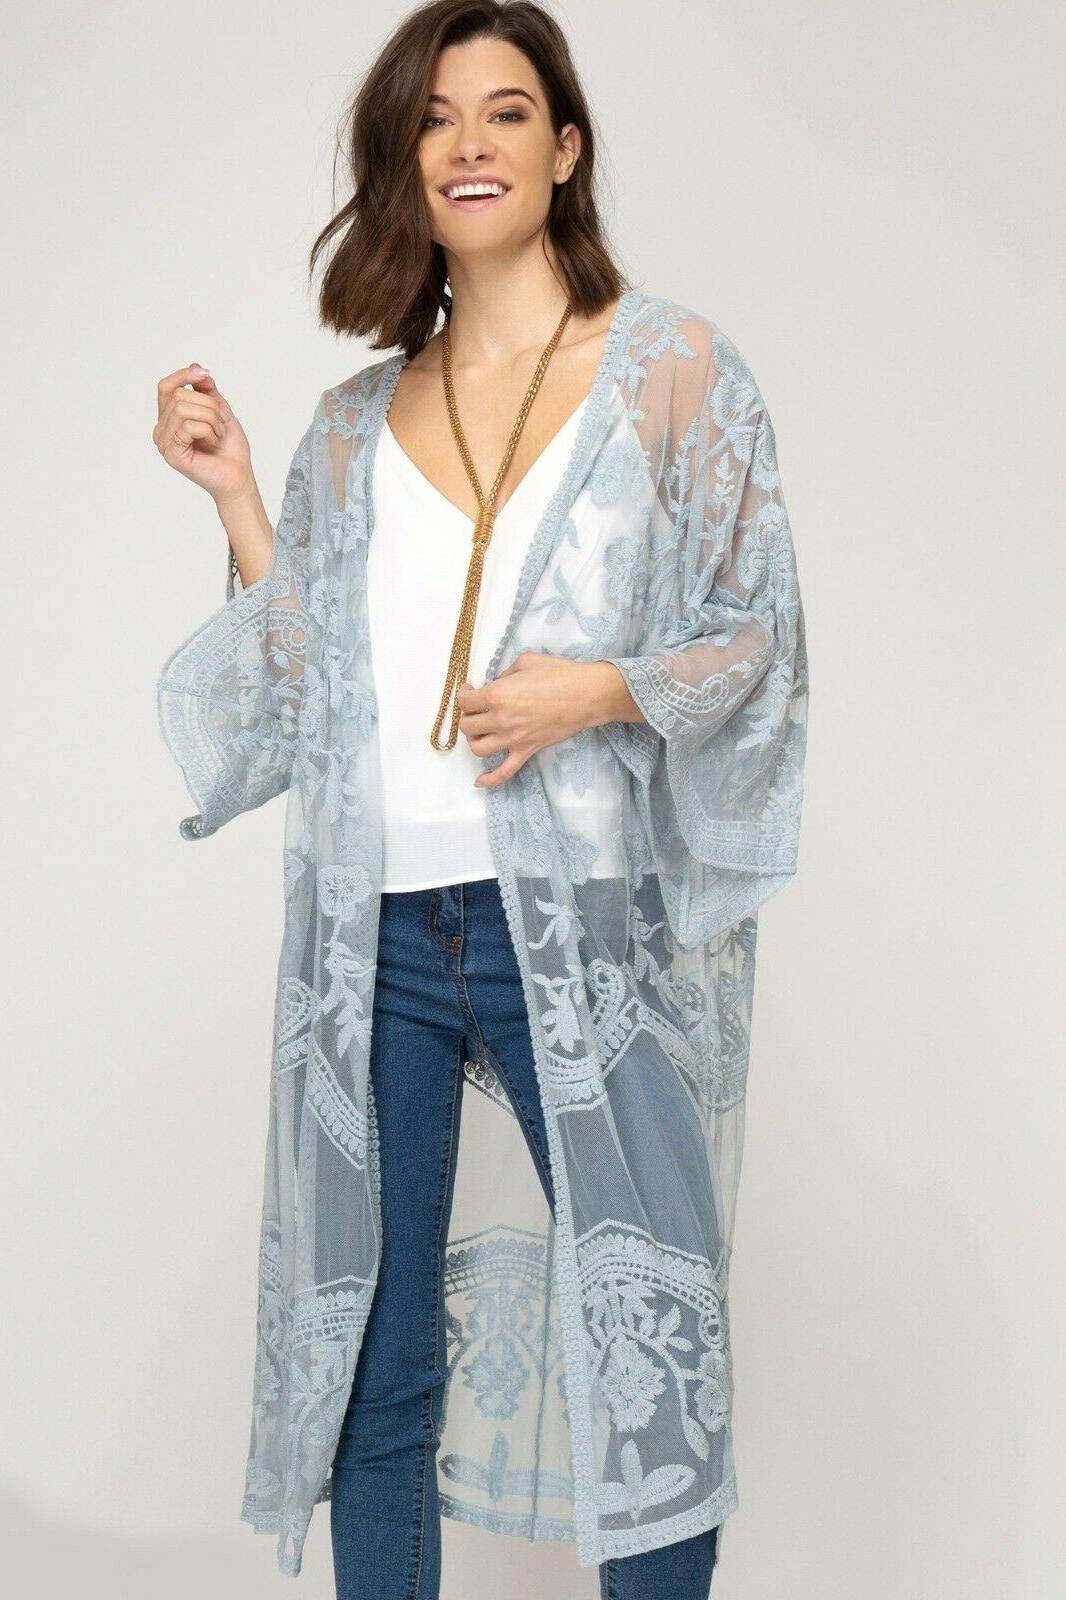 She Sky Lace Open Front Cardigan Duster